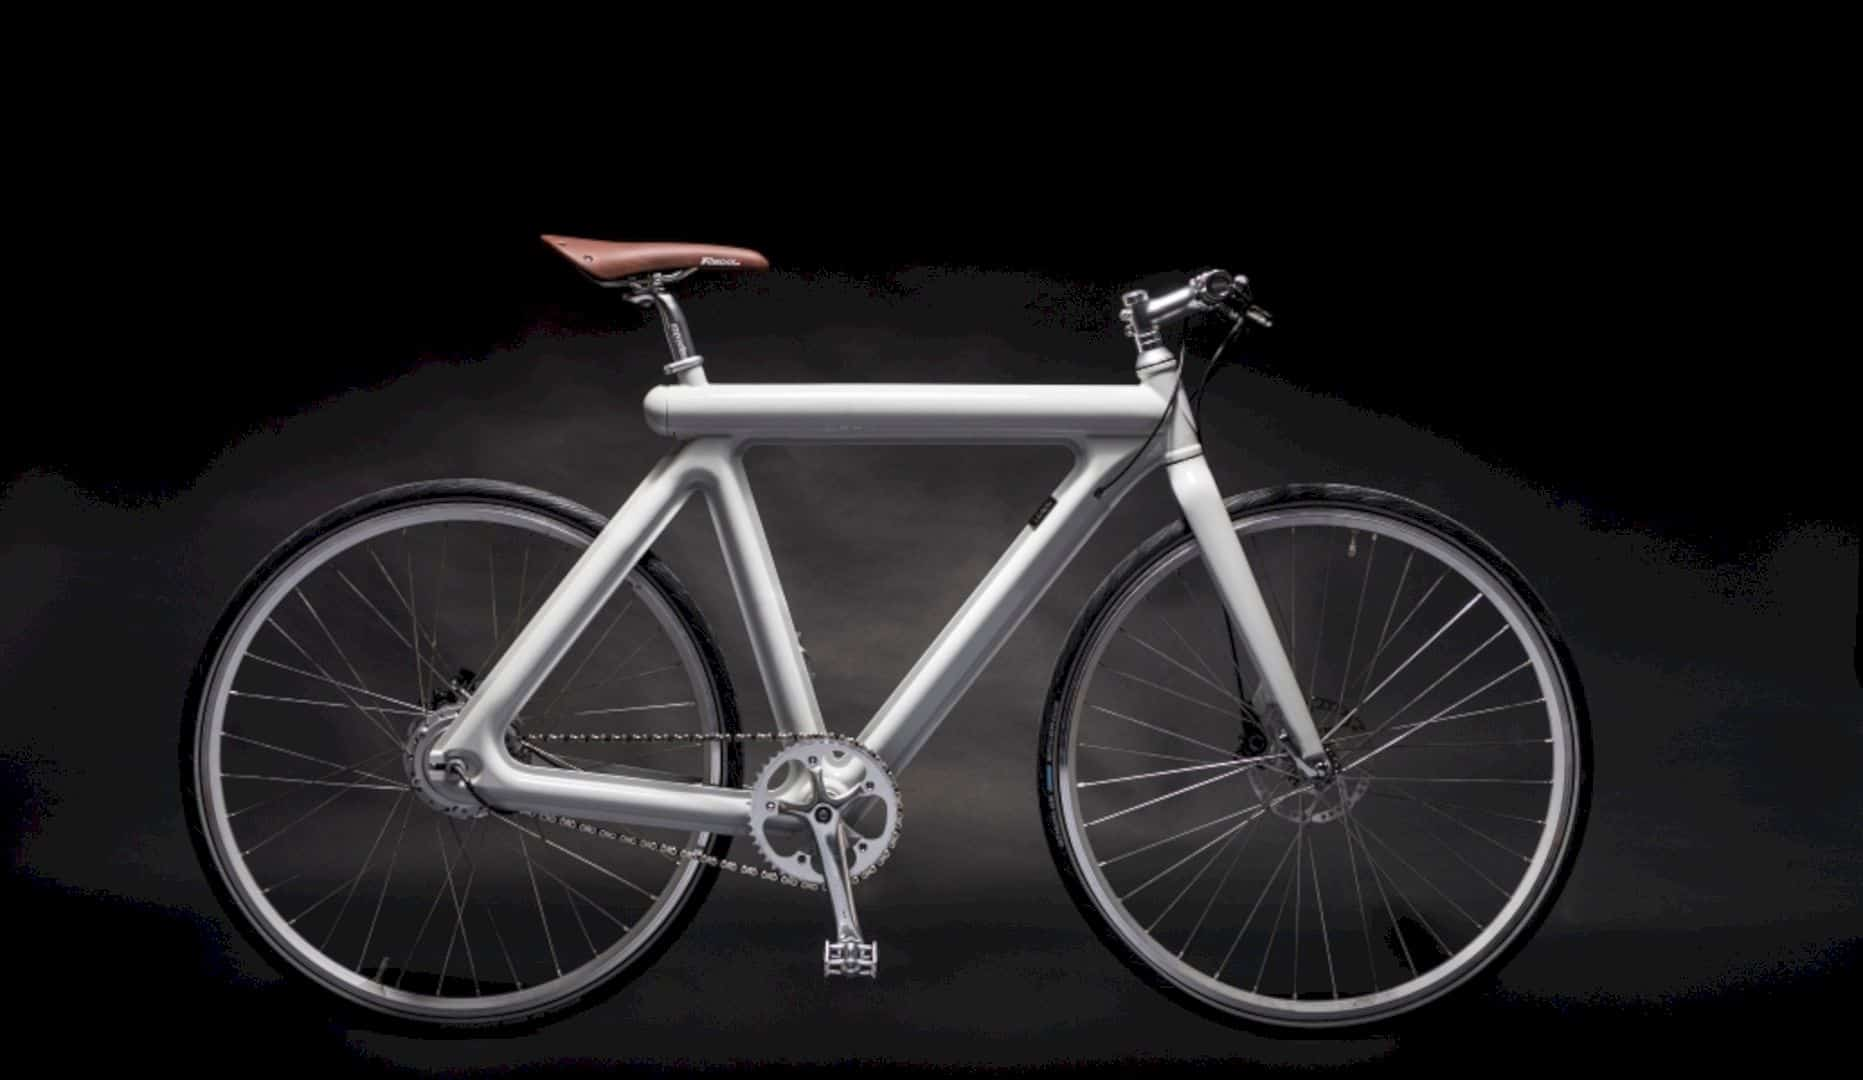 Pressed Bike: Smart Package of Bike with Removable Battery